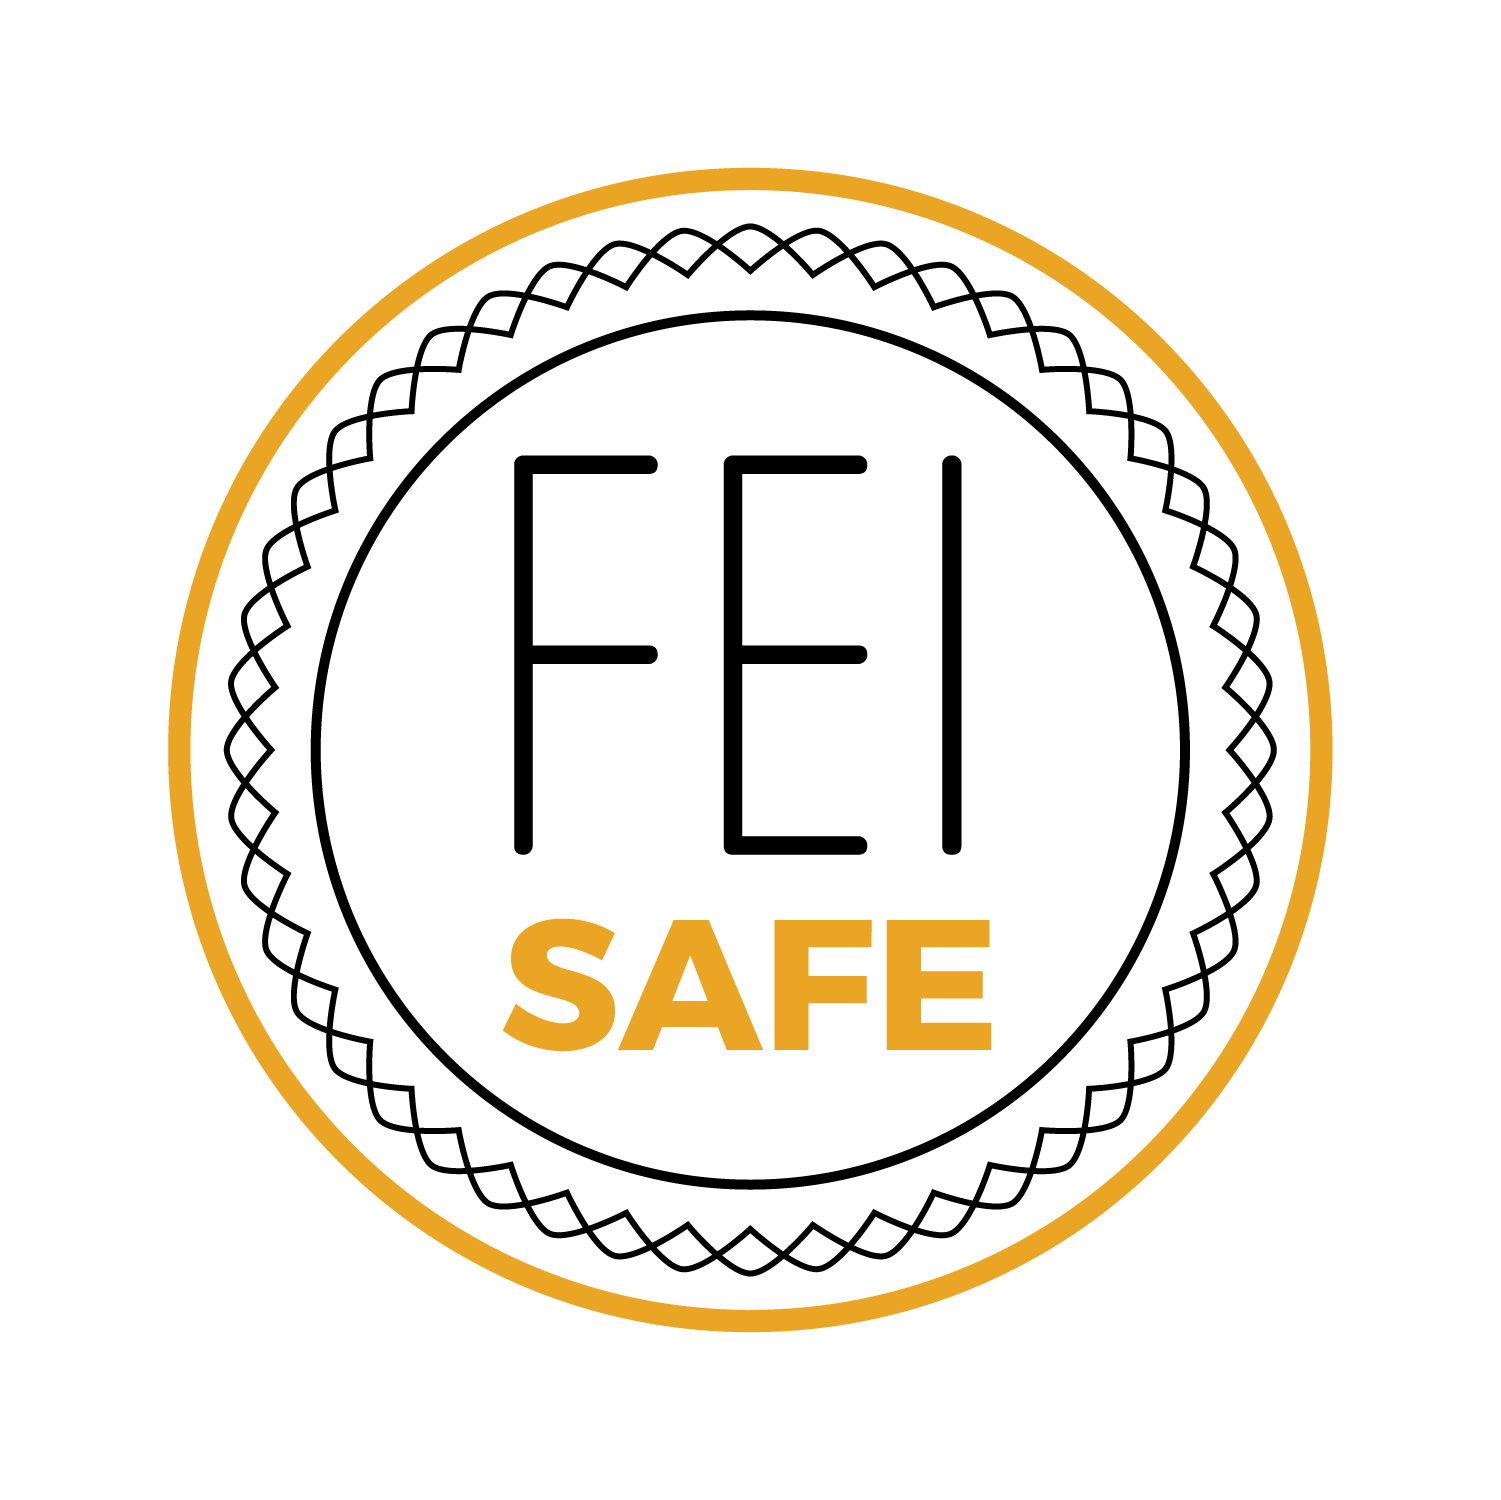 USEF and FEI safe